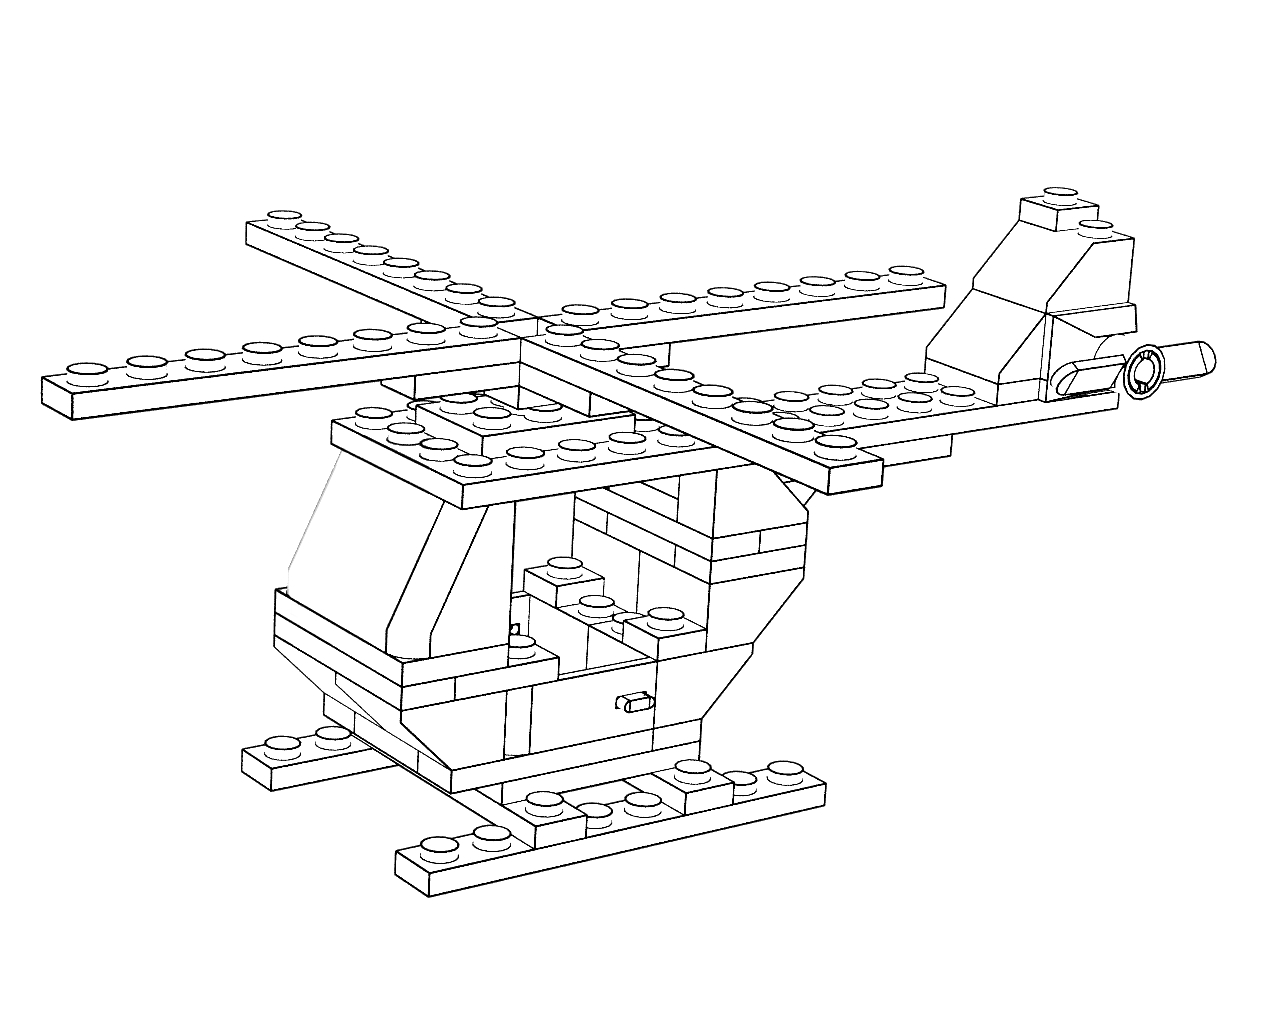 lego plane coloring pages - photo#4